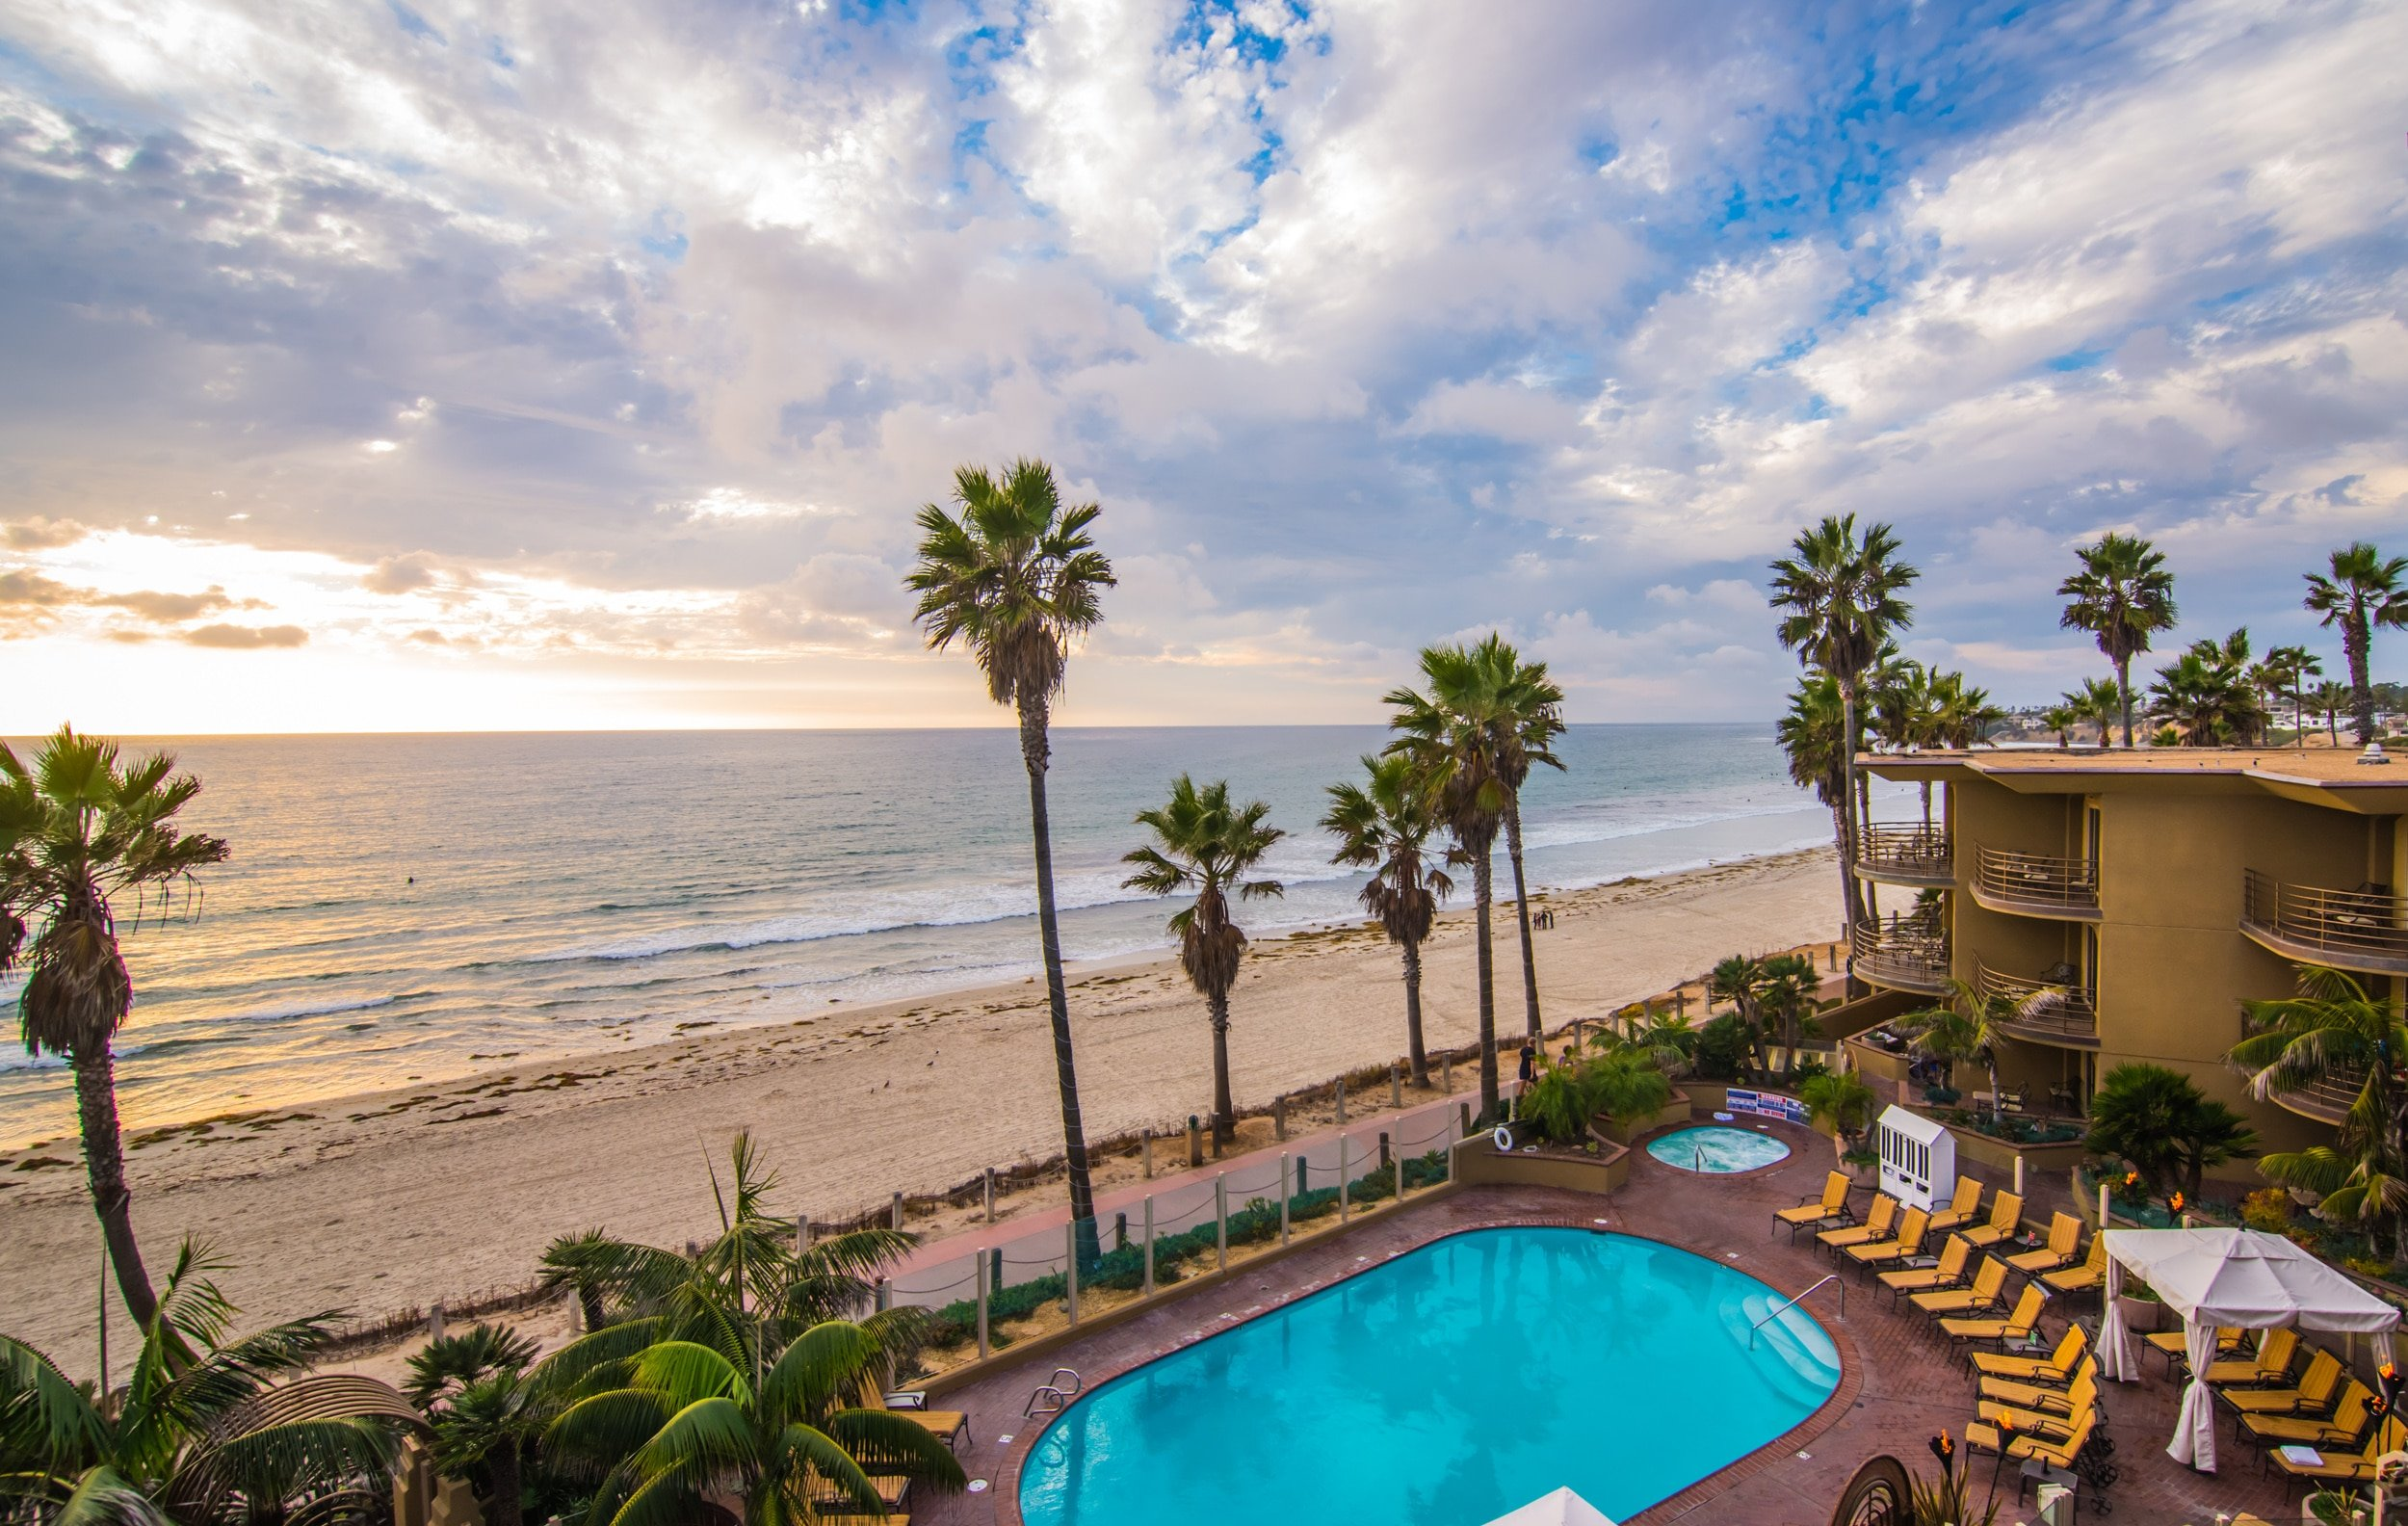 Pacific Terrace has one of the best San Diego hotel pools